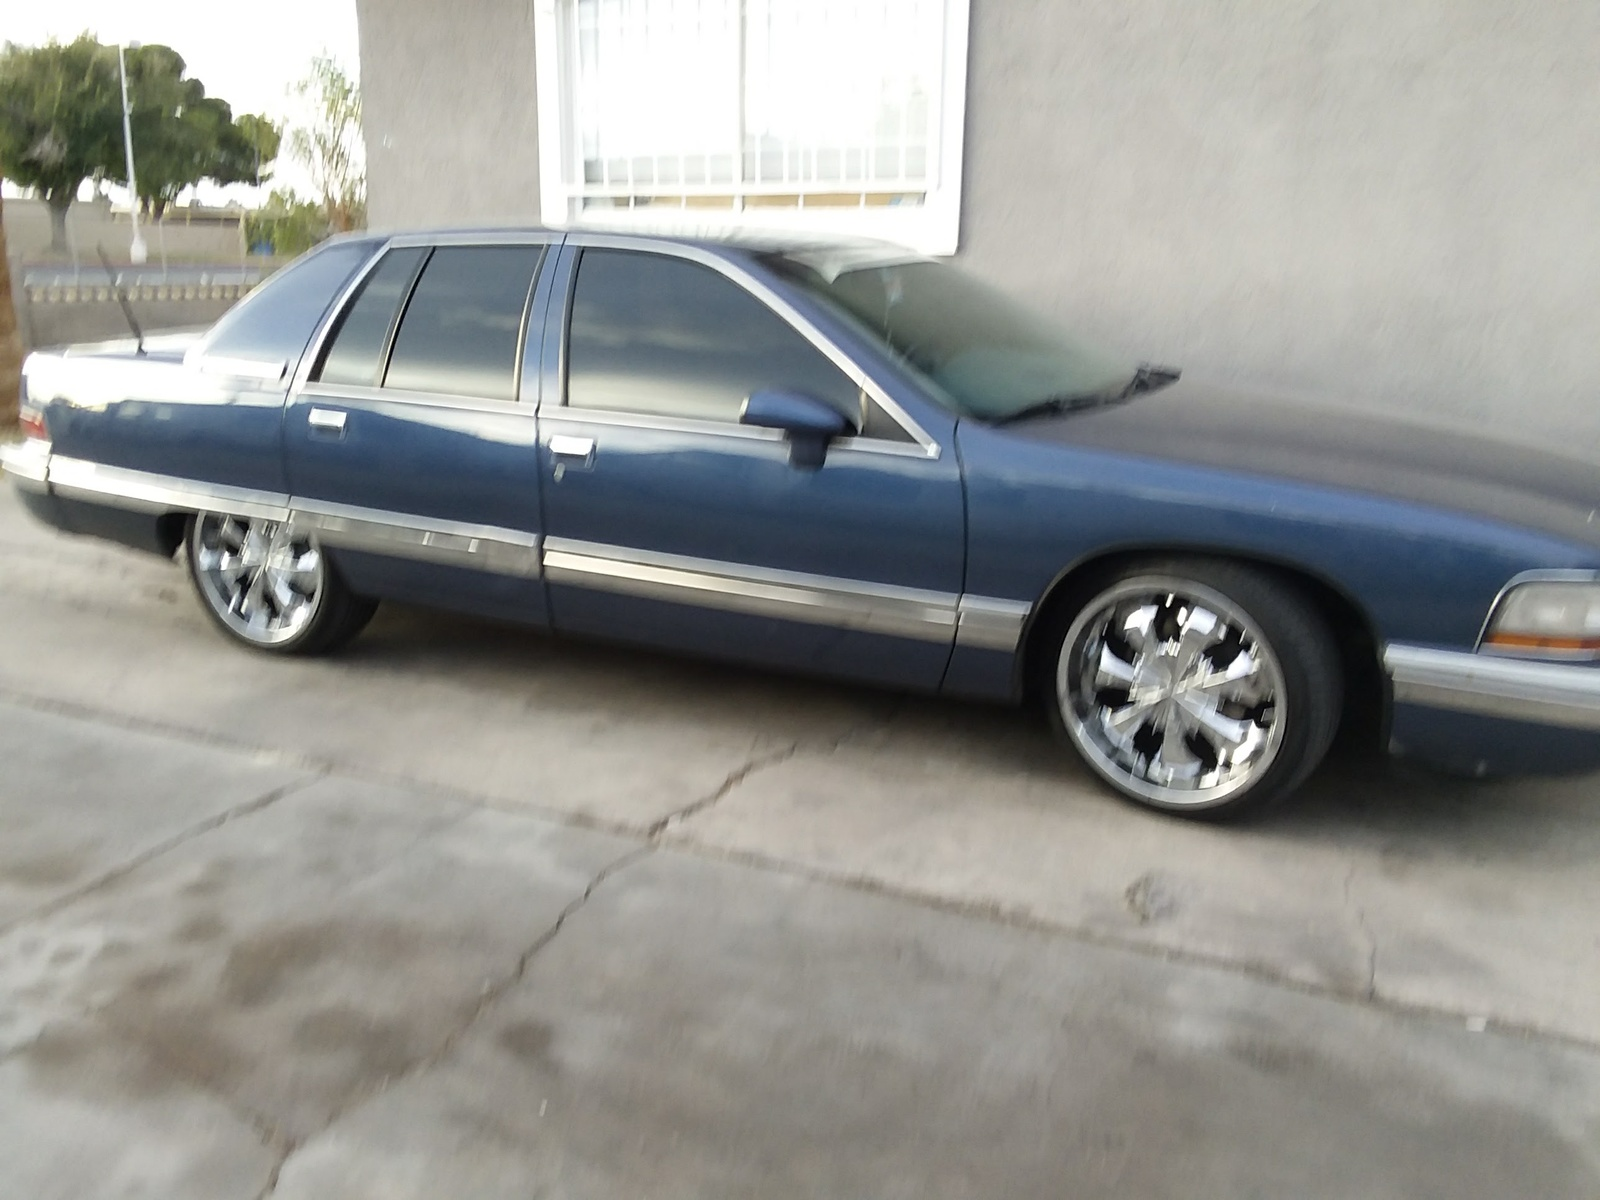 Buick Roadmaster Questions 94 57 L Lt1 Will 1994 Regal Fuse Box Crank But Wont Stay Running